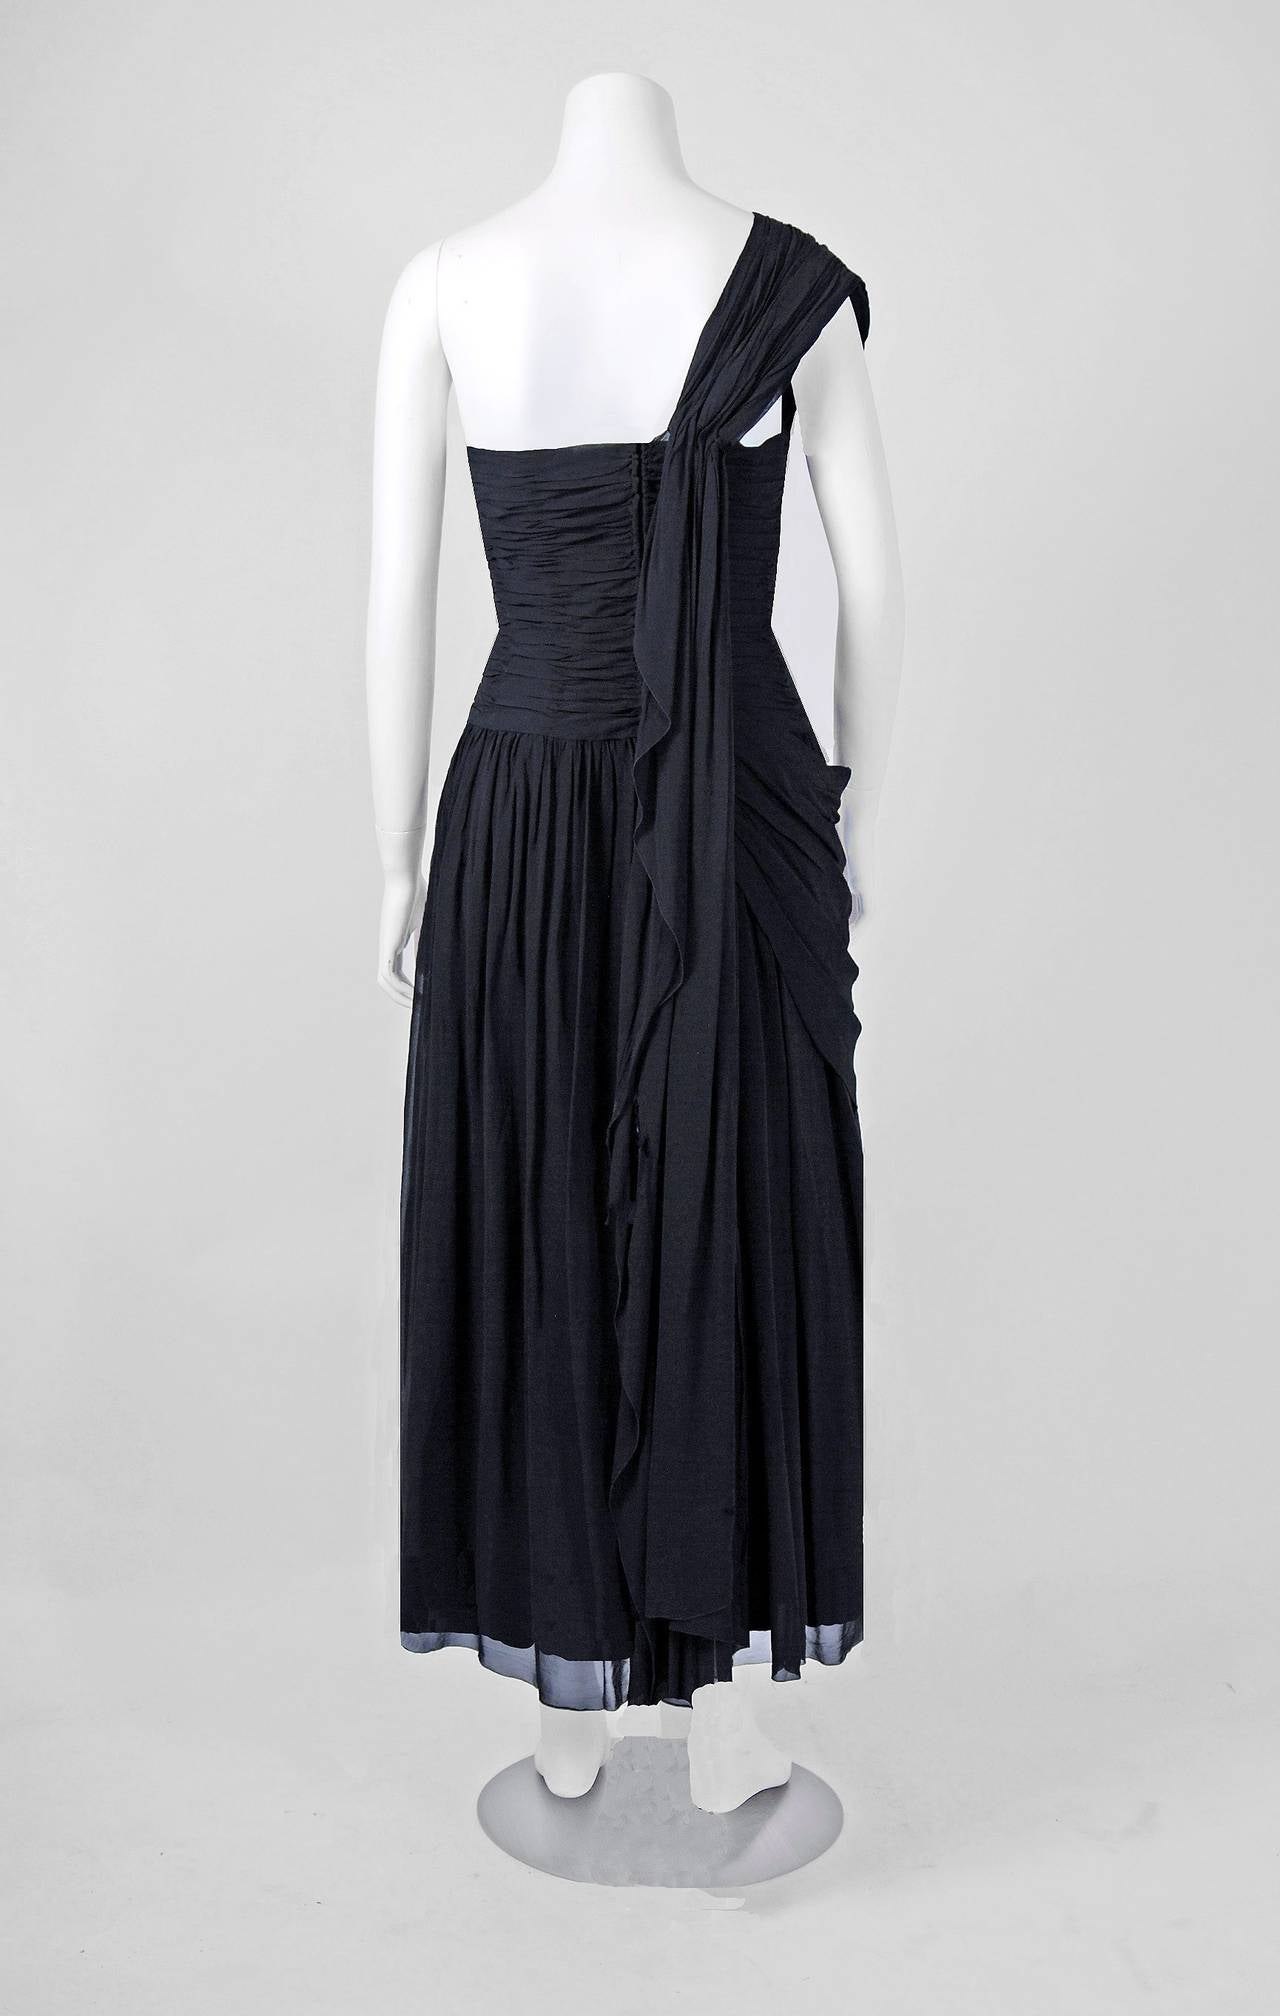 1950's French Couture Heavily-Pleated Black Chiffon One-Shoulder Party Dress For Sale 2